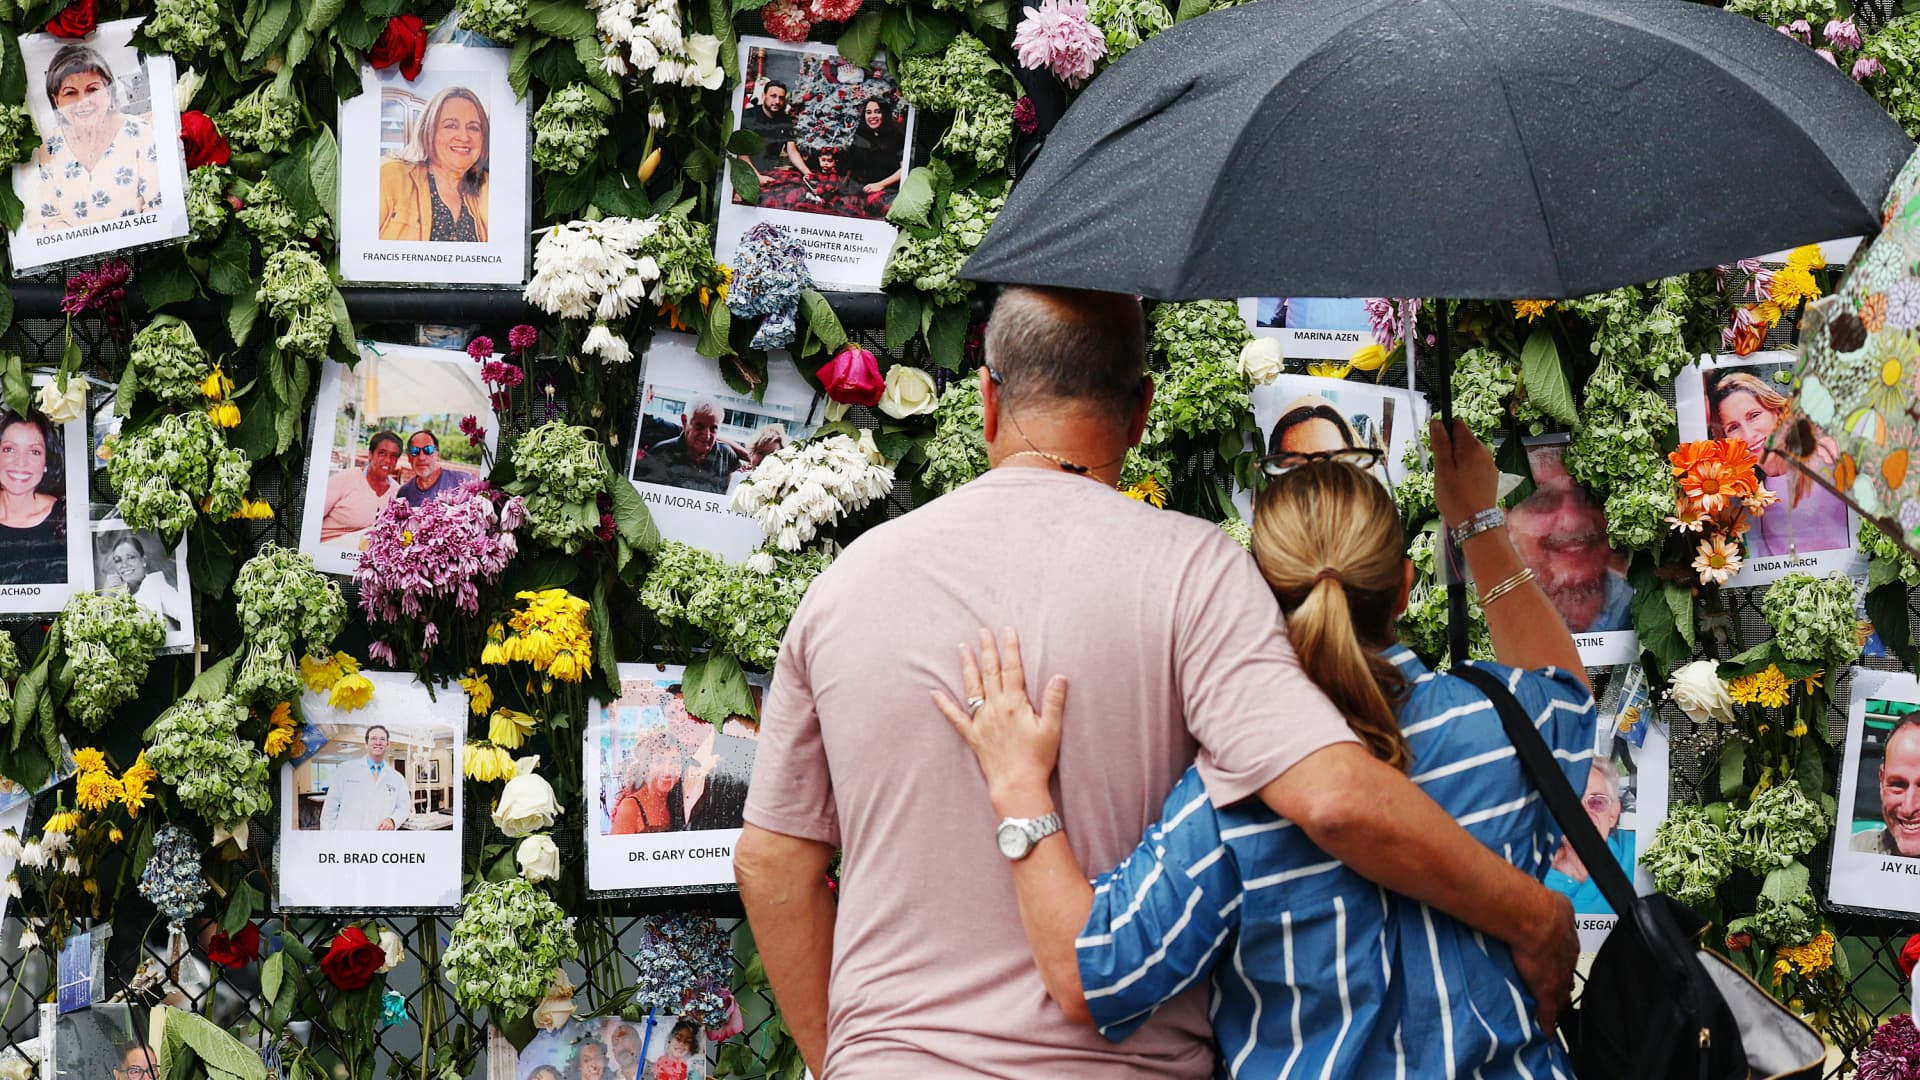 People look at a memorial that has pictures of some of the missing from the partially collapsed 12-story Champlain Towers South condo building on June 30, 2021 in Surfside, Florida.